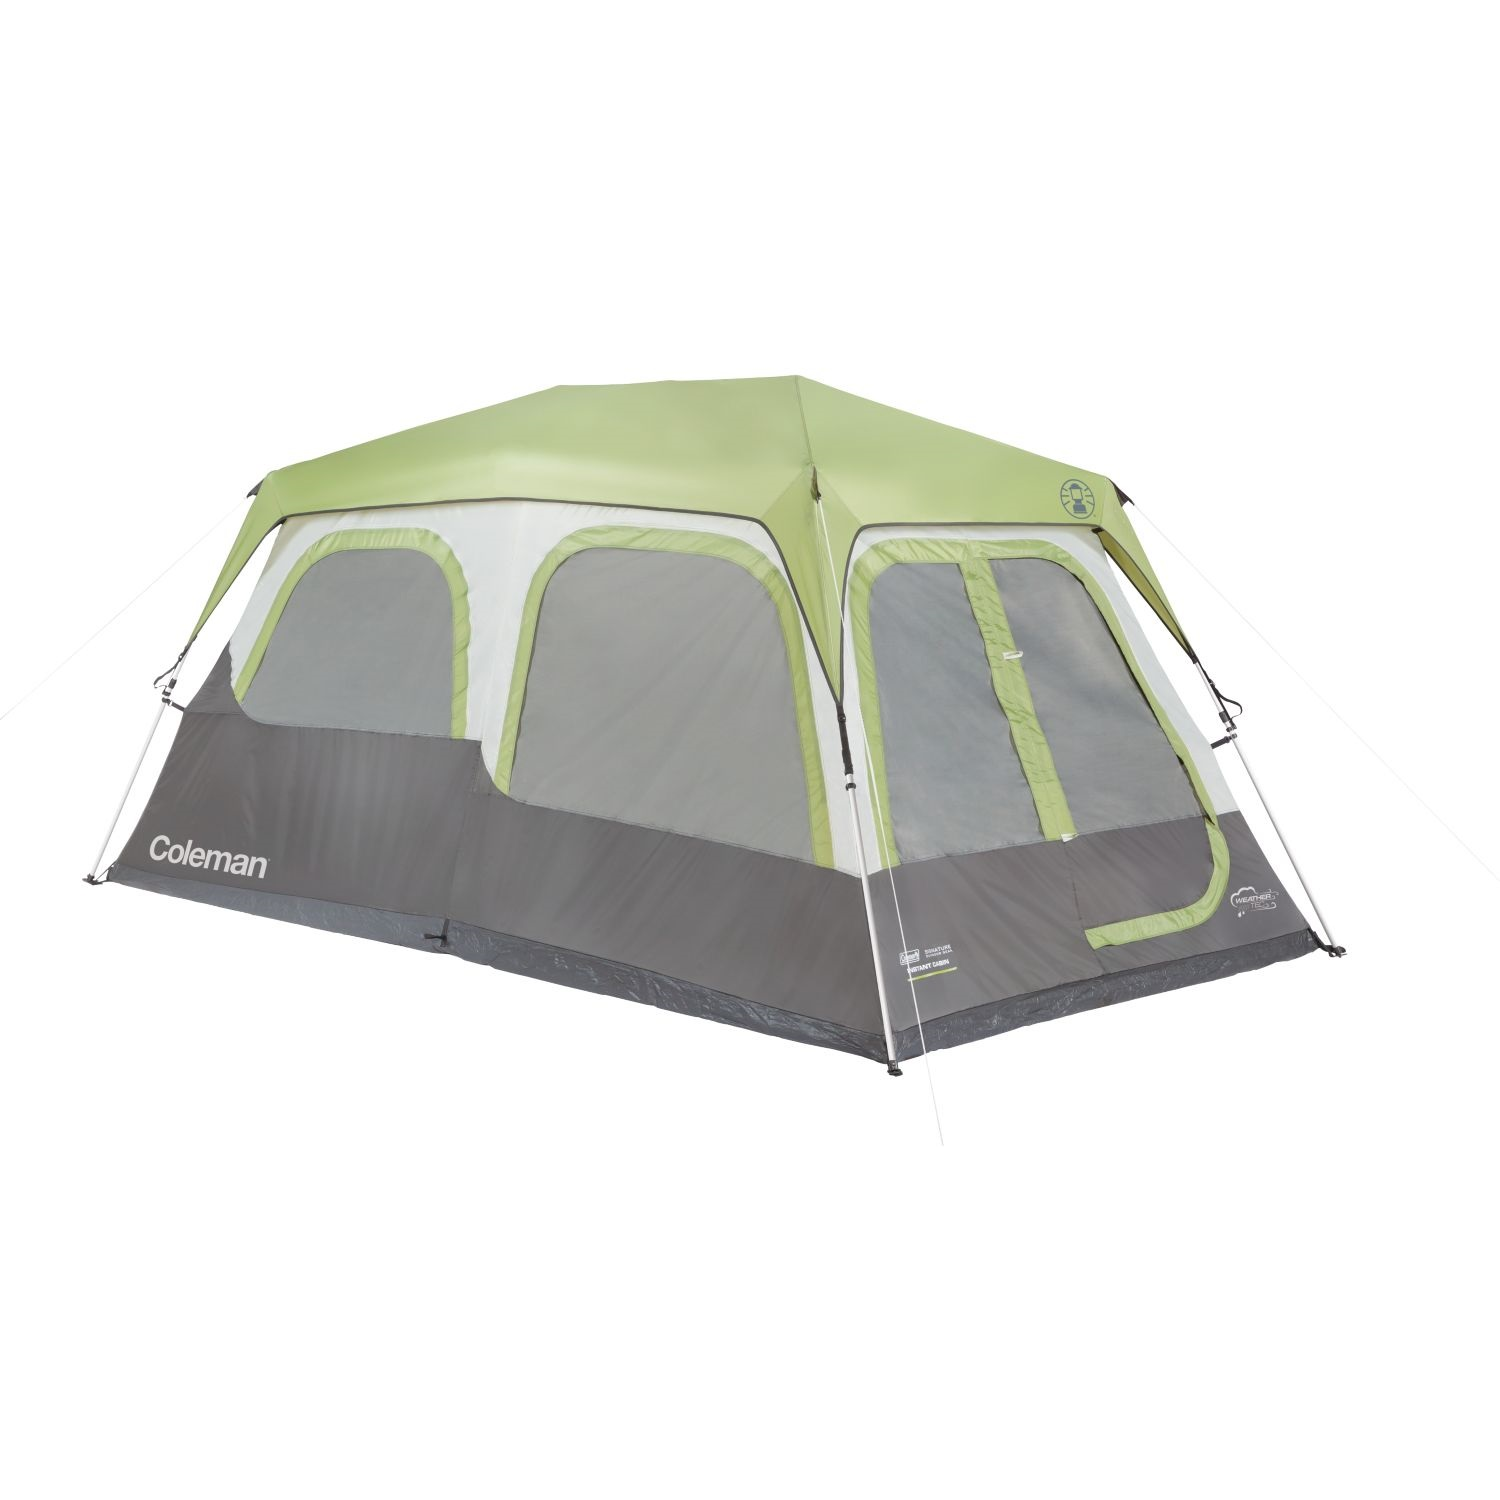 8 Person Instant Cabin Tent : Coleman tent instant cabin person w fly signature x